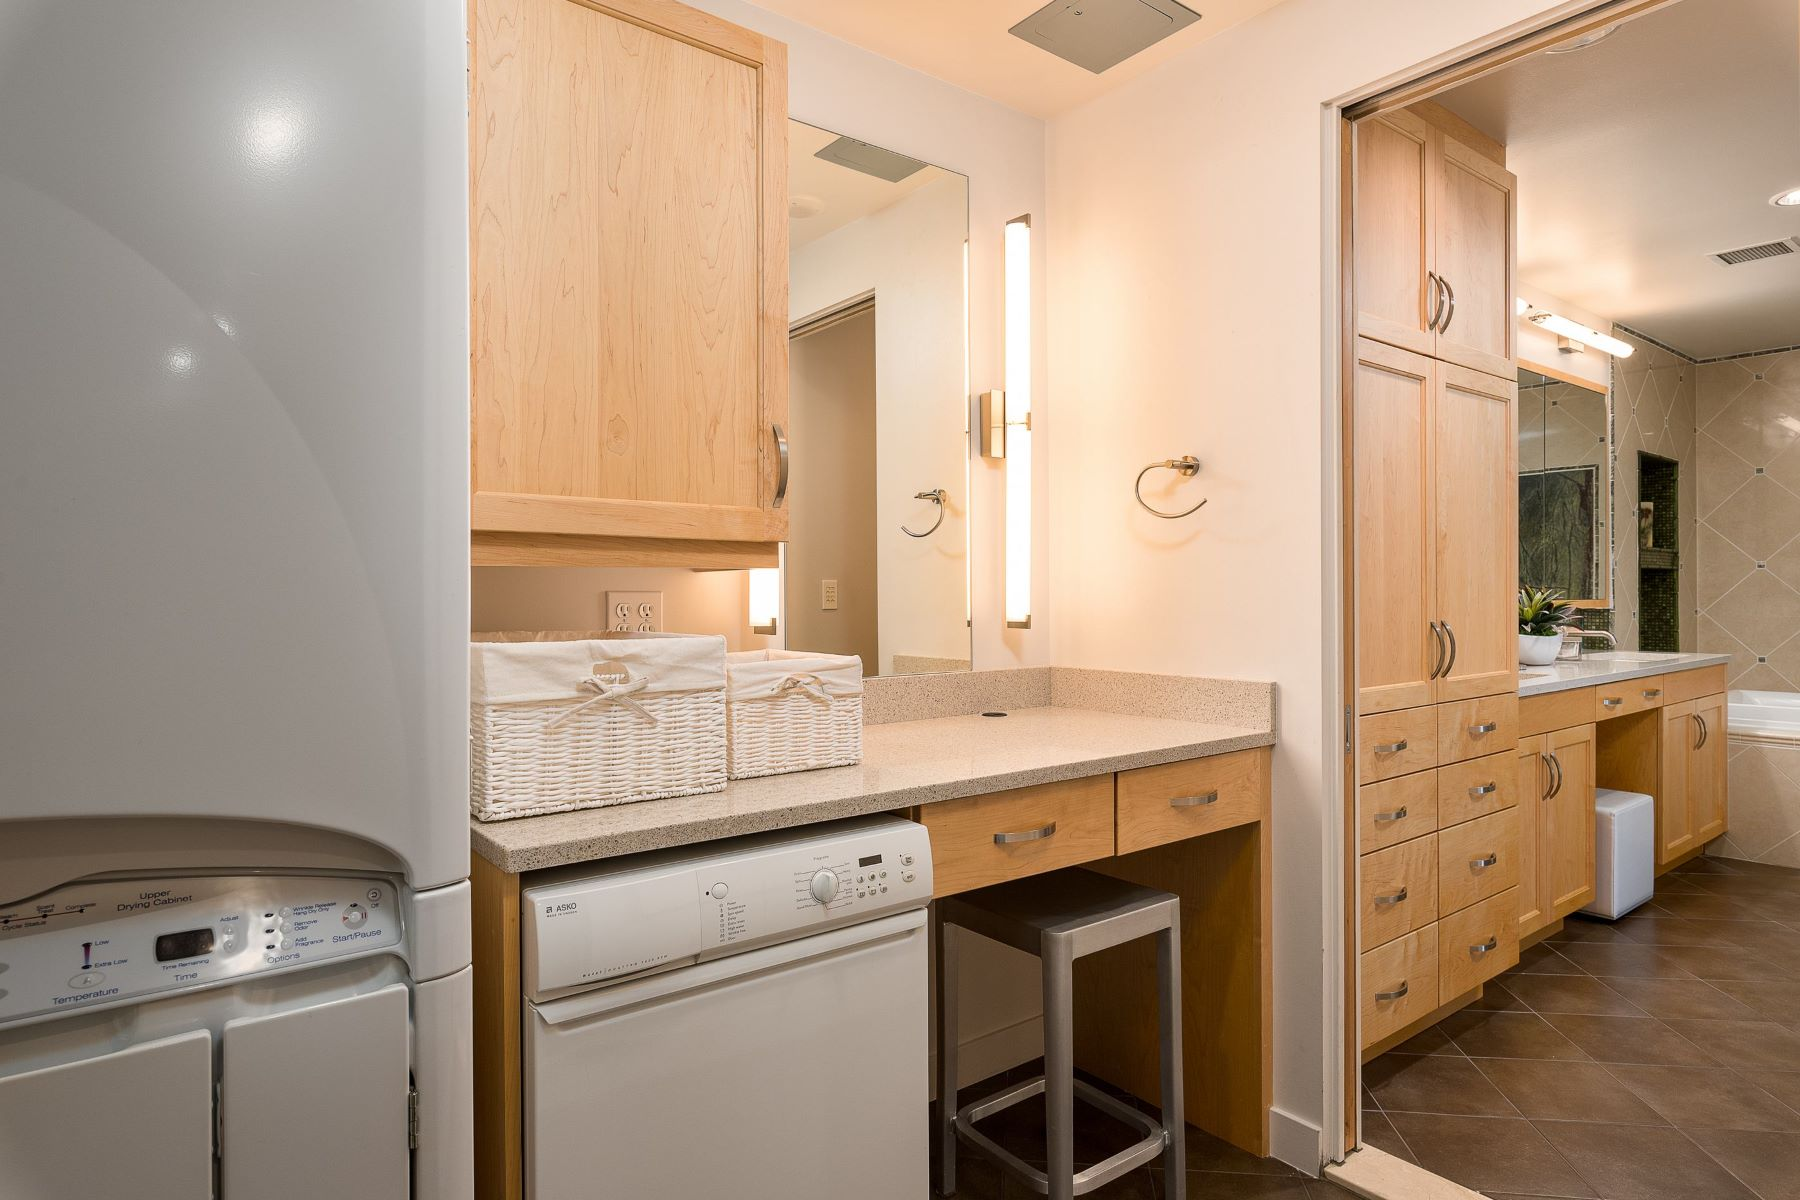 Additional photo for property listing at 255 Capitol Boulevard 1605/1607, Boise 255 S Capitol Blvd 1605/1607 Boise, Idaho 83702